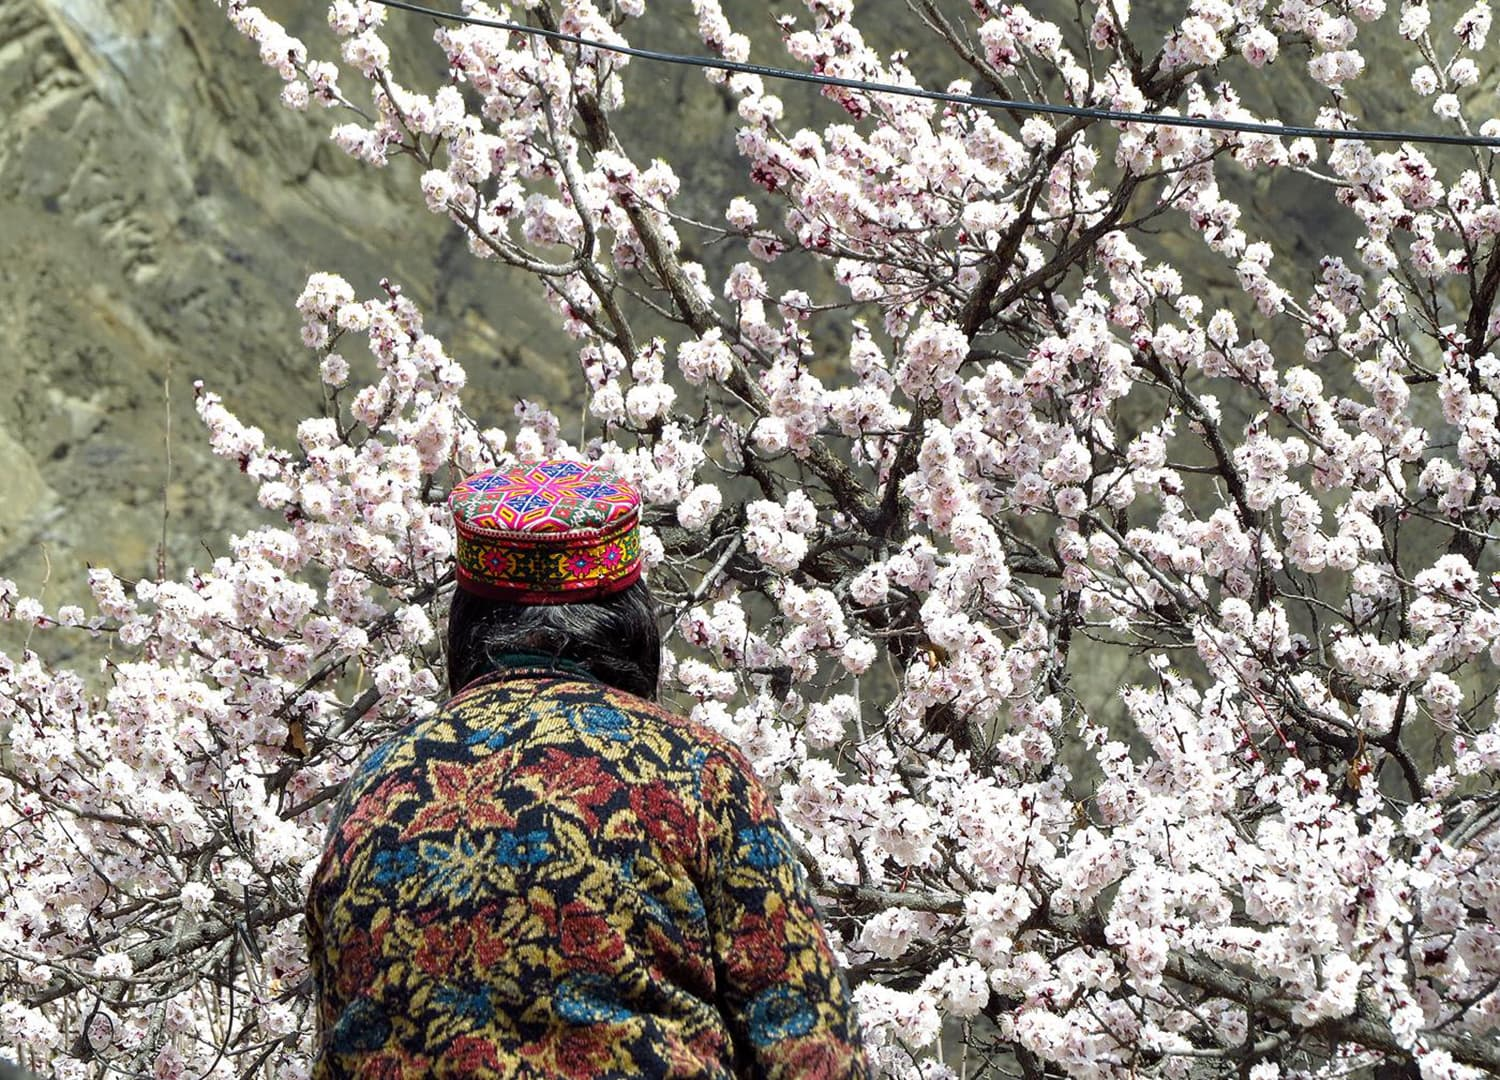 A woman stands amidst apricot blossoms in Karimabad, Hunza.